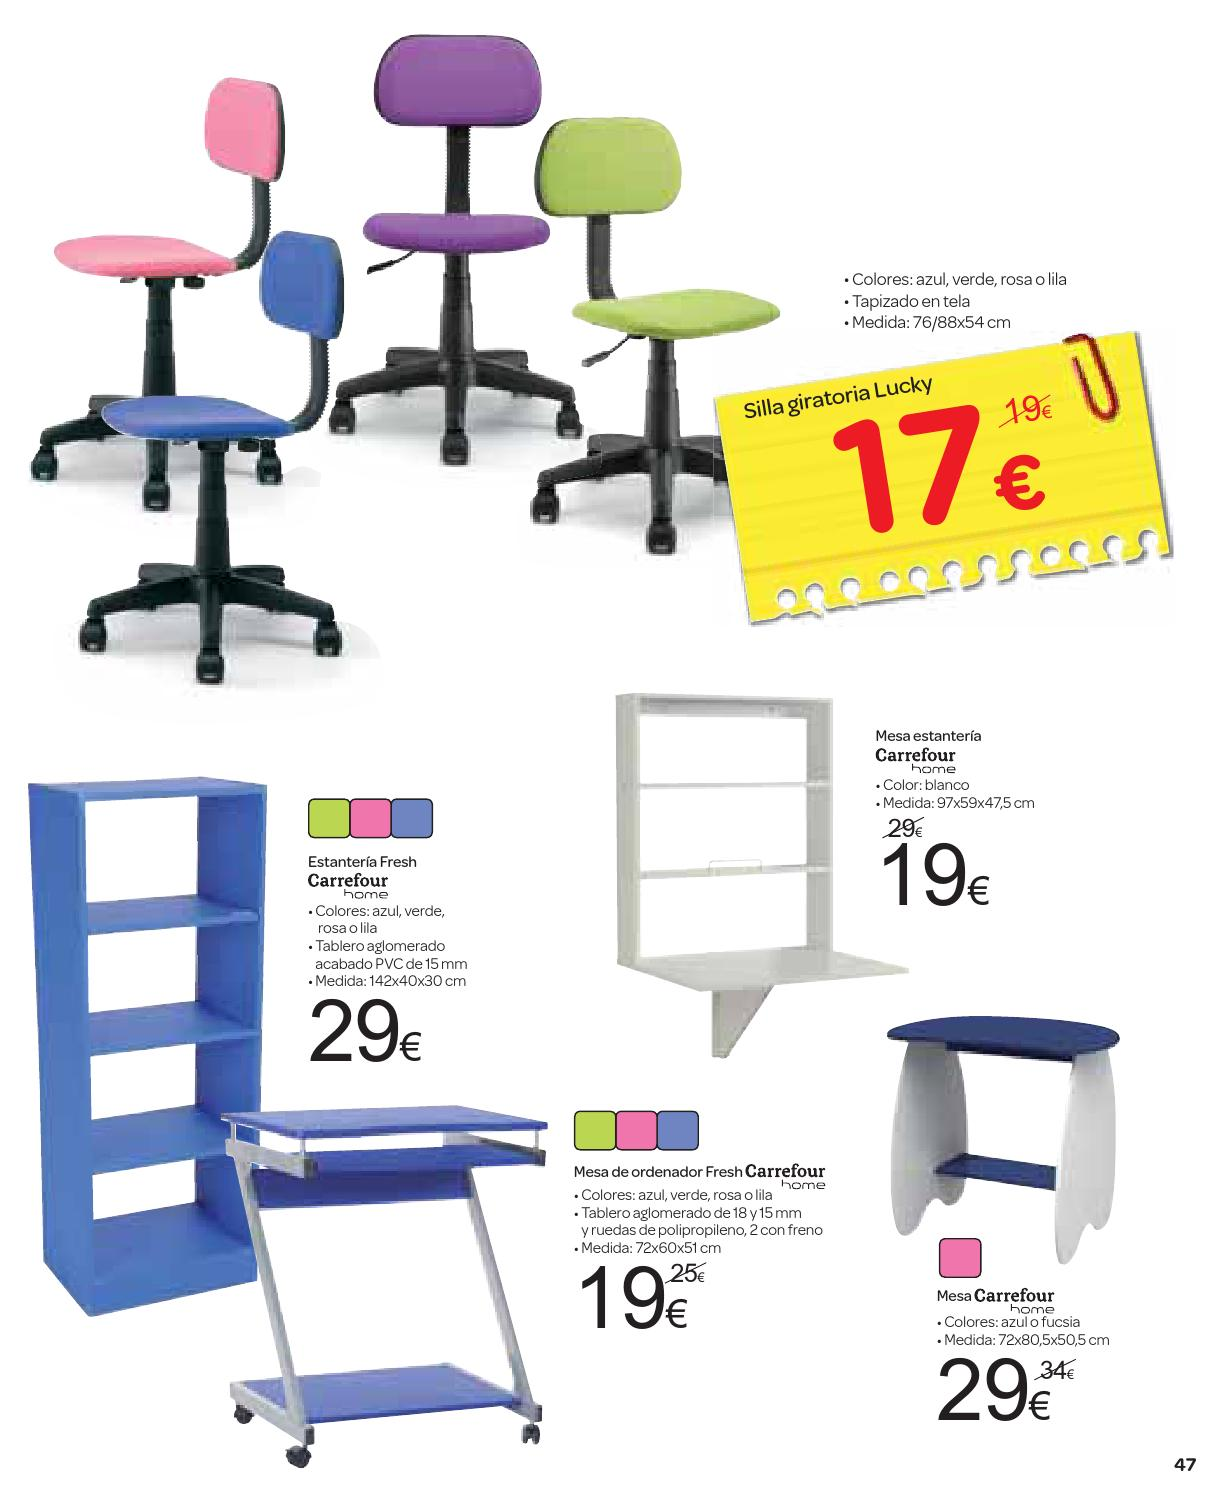 Catalogo Carrefour Vuelta Al Cole By Carrefour Online Issuu